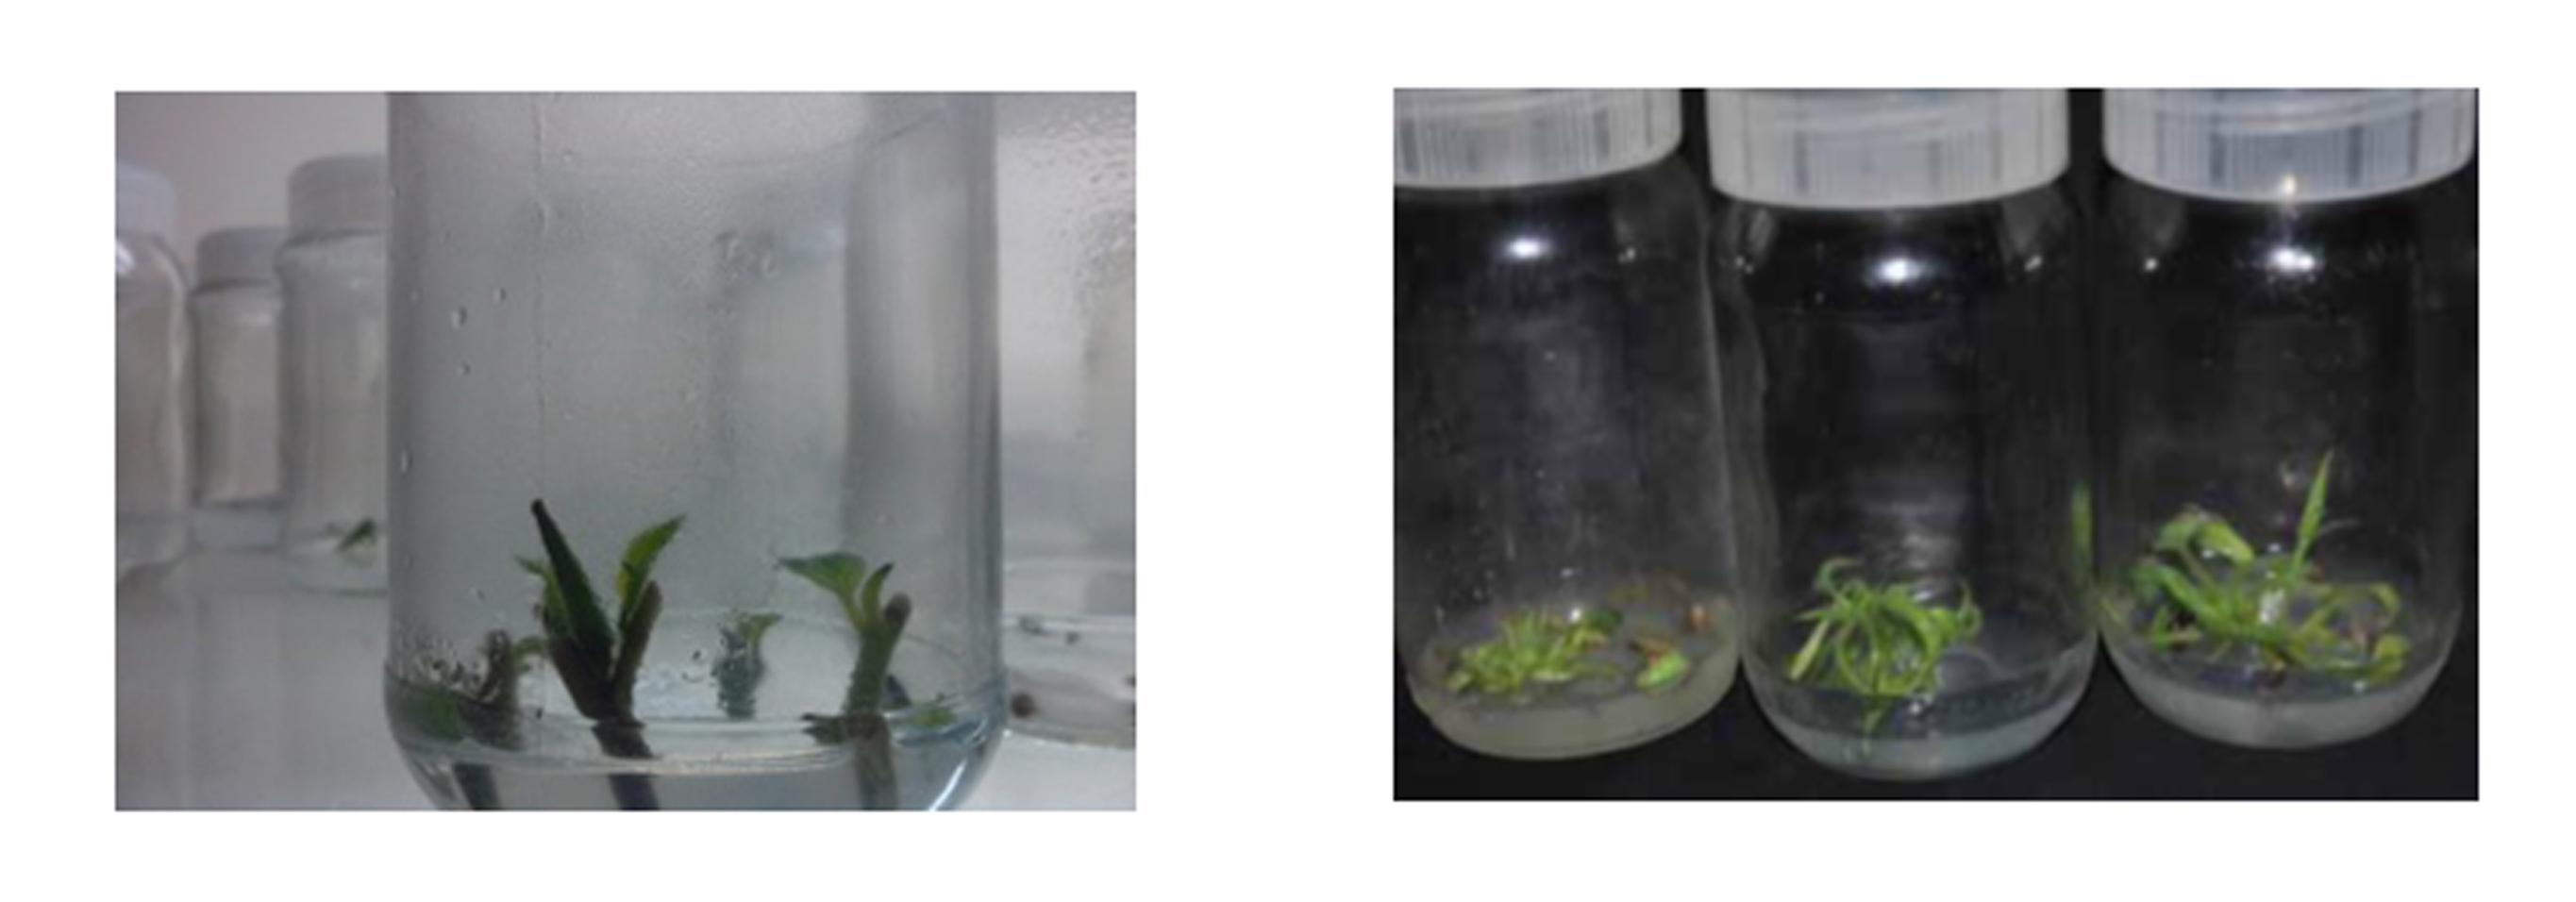 Figure 2: Cultured Plantlets of Lantana camara and Datura inoxia